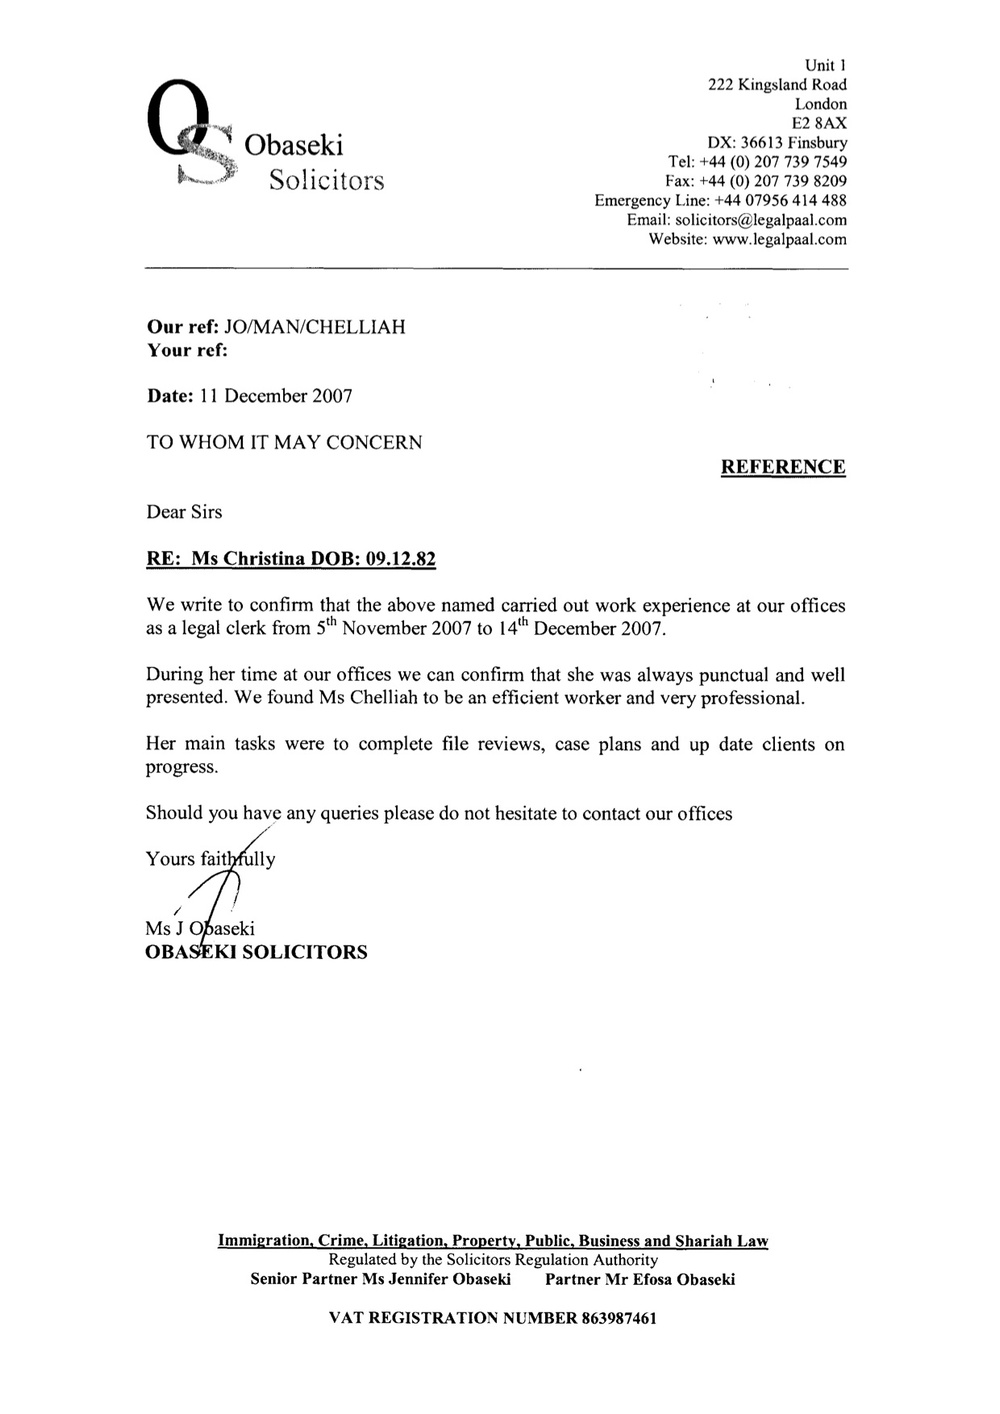 2007 - Legal - Obaseki Solicitors - Reference Letter.jpg